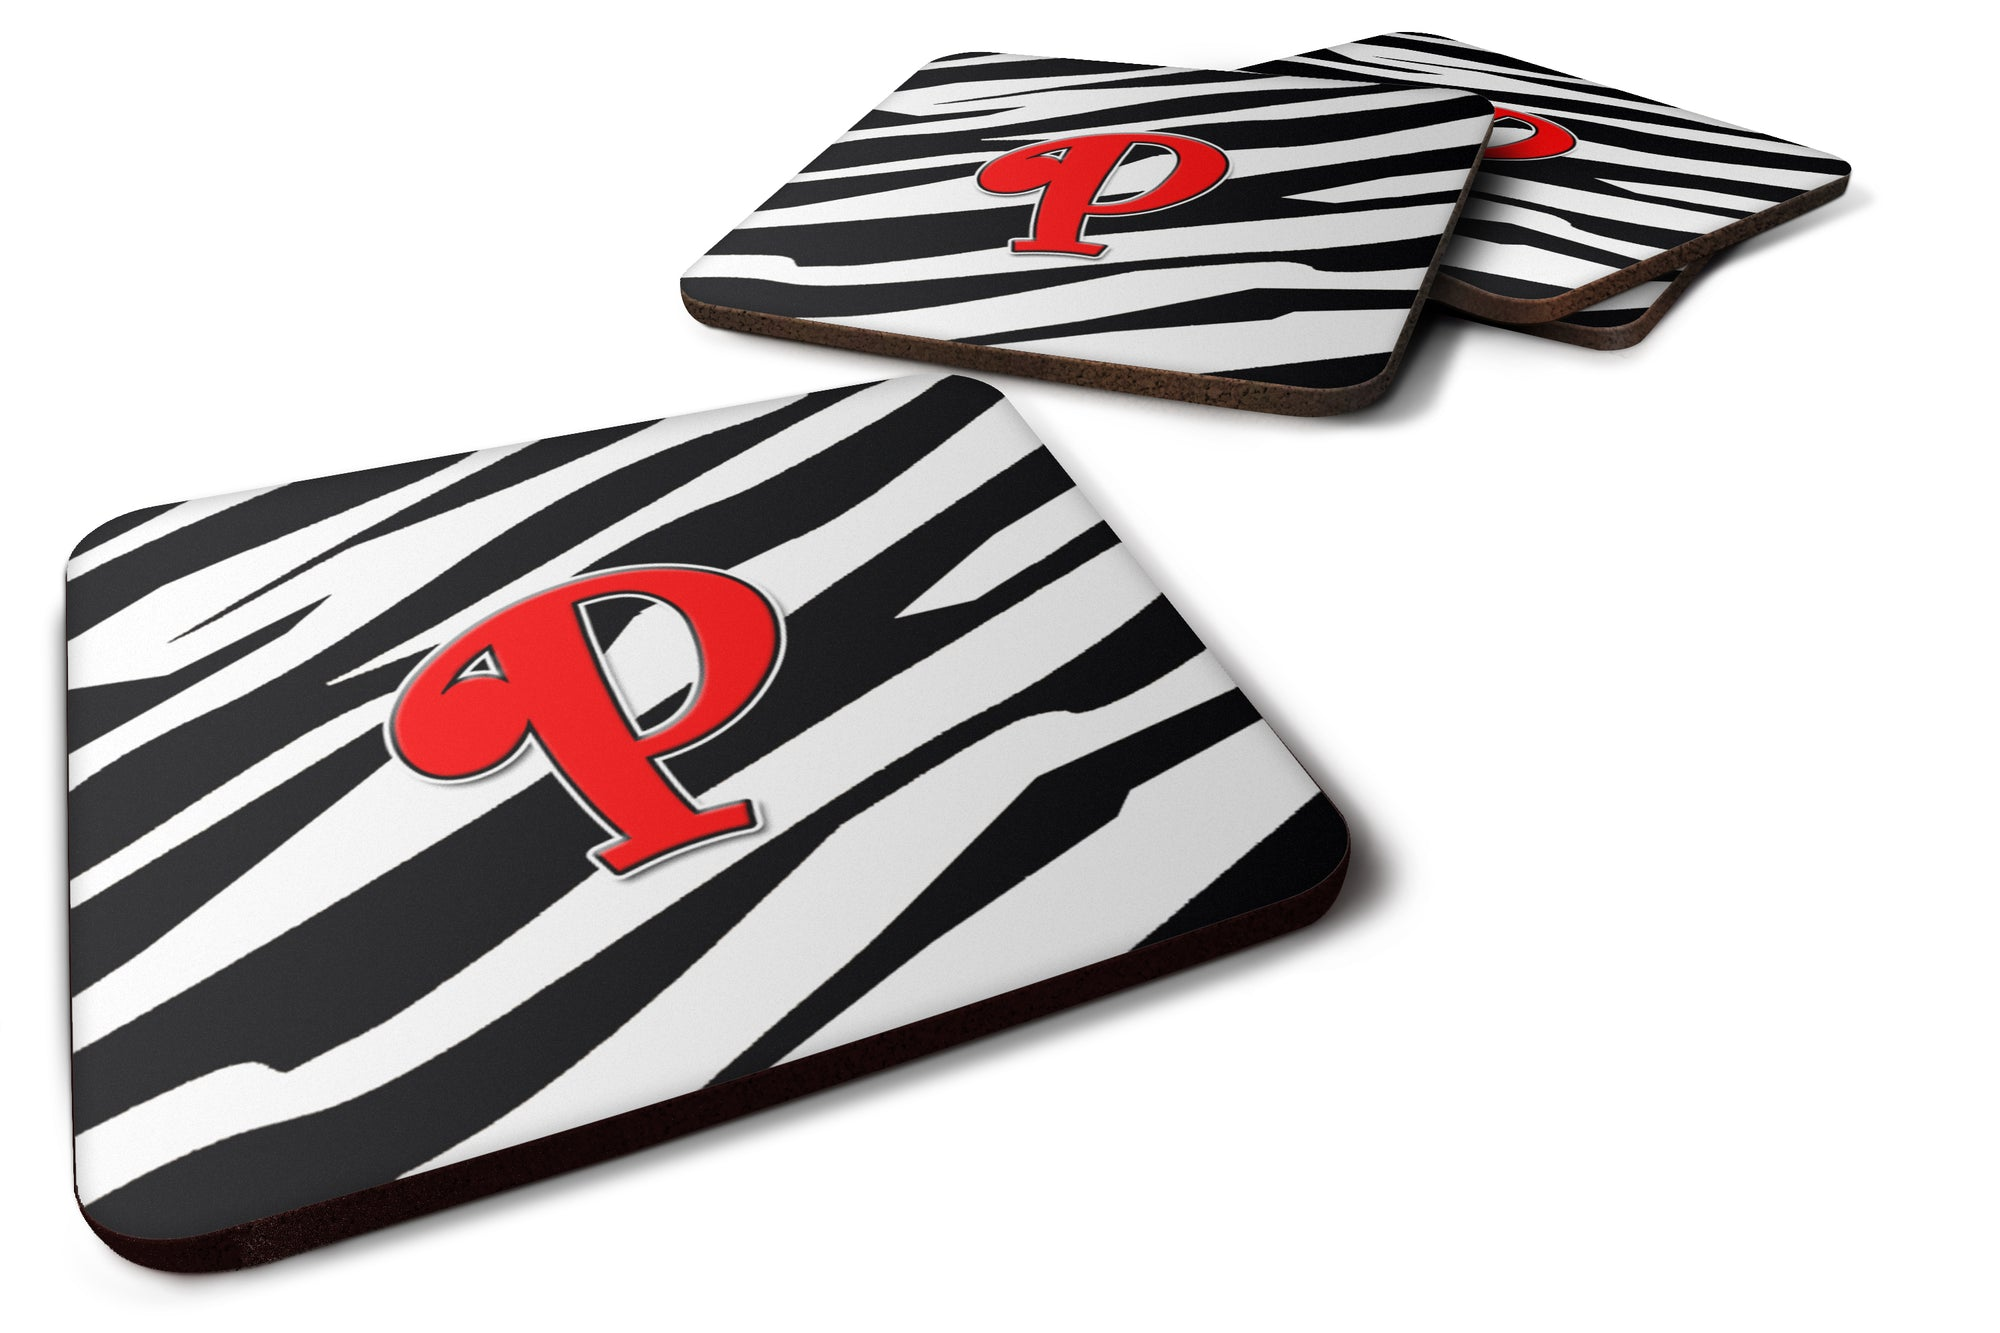 Buy this Set of 4 Monogram - Zebra Red Foam Coasters Initial Letter P